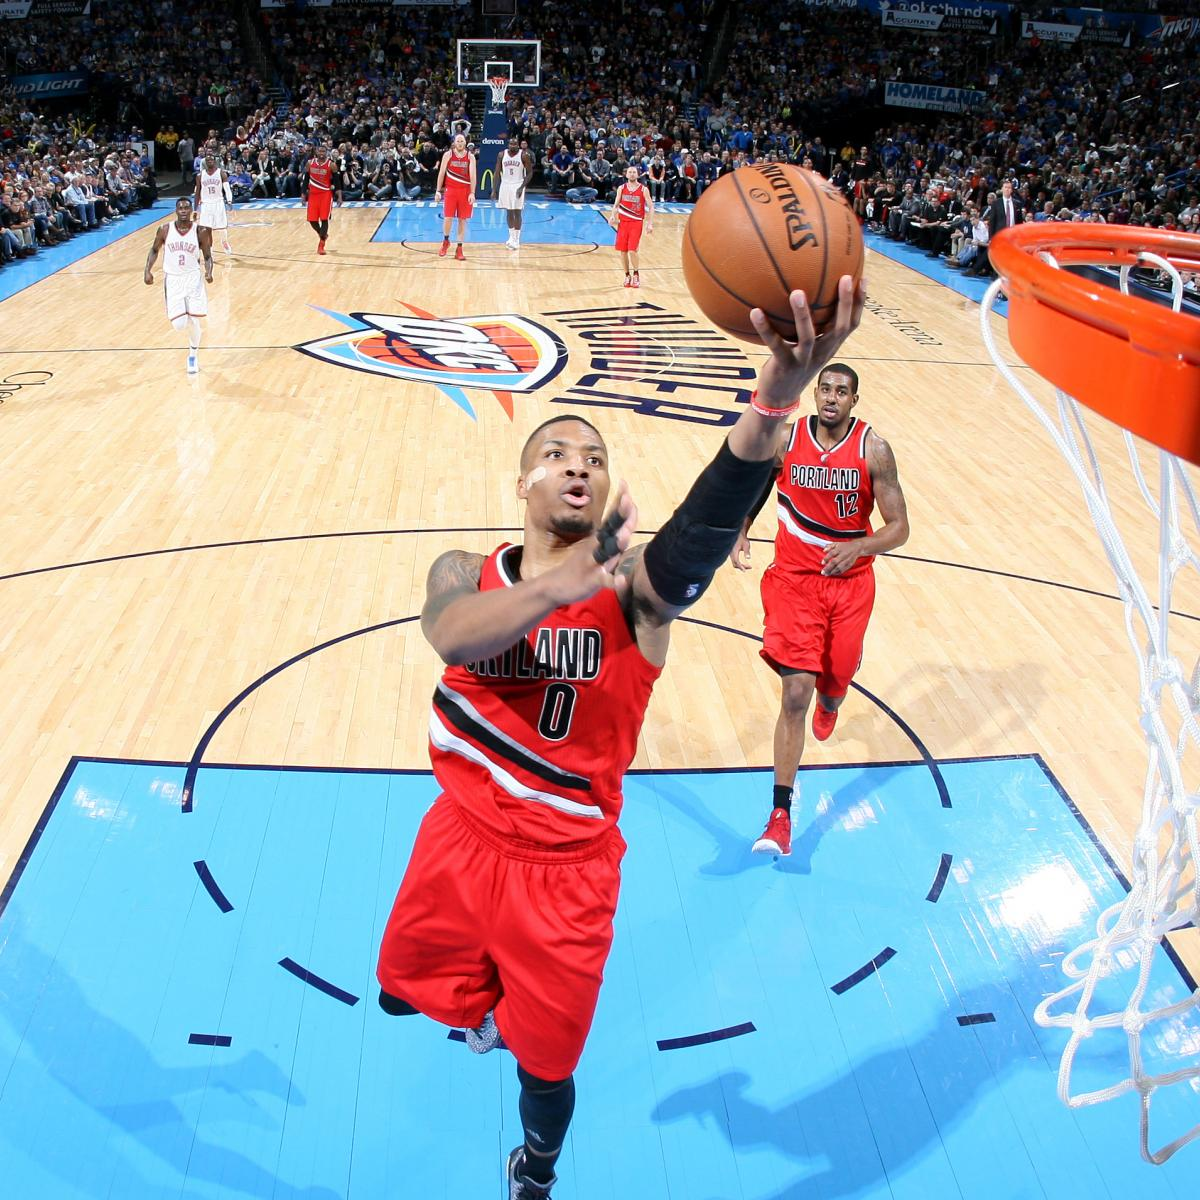 Portland Blazers Last Game: Portland Trail Blazers Vs. OKC Thunder 12/23/14: Video